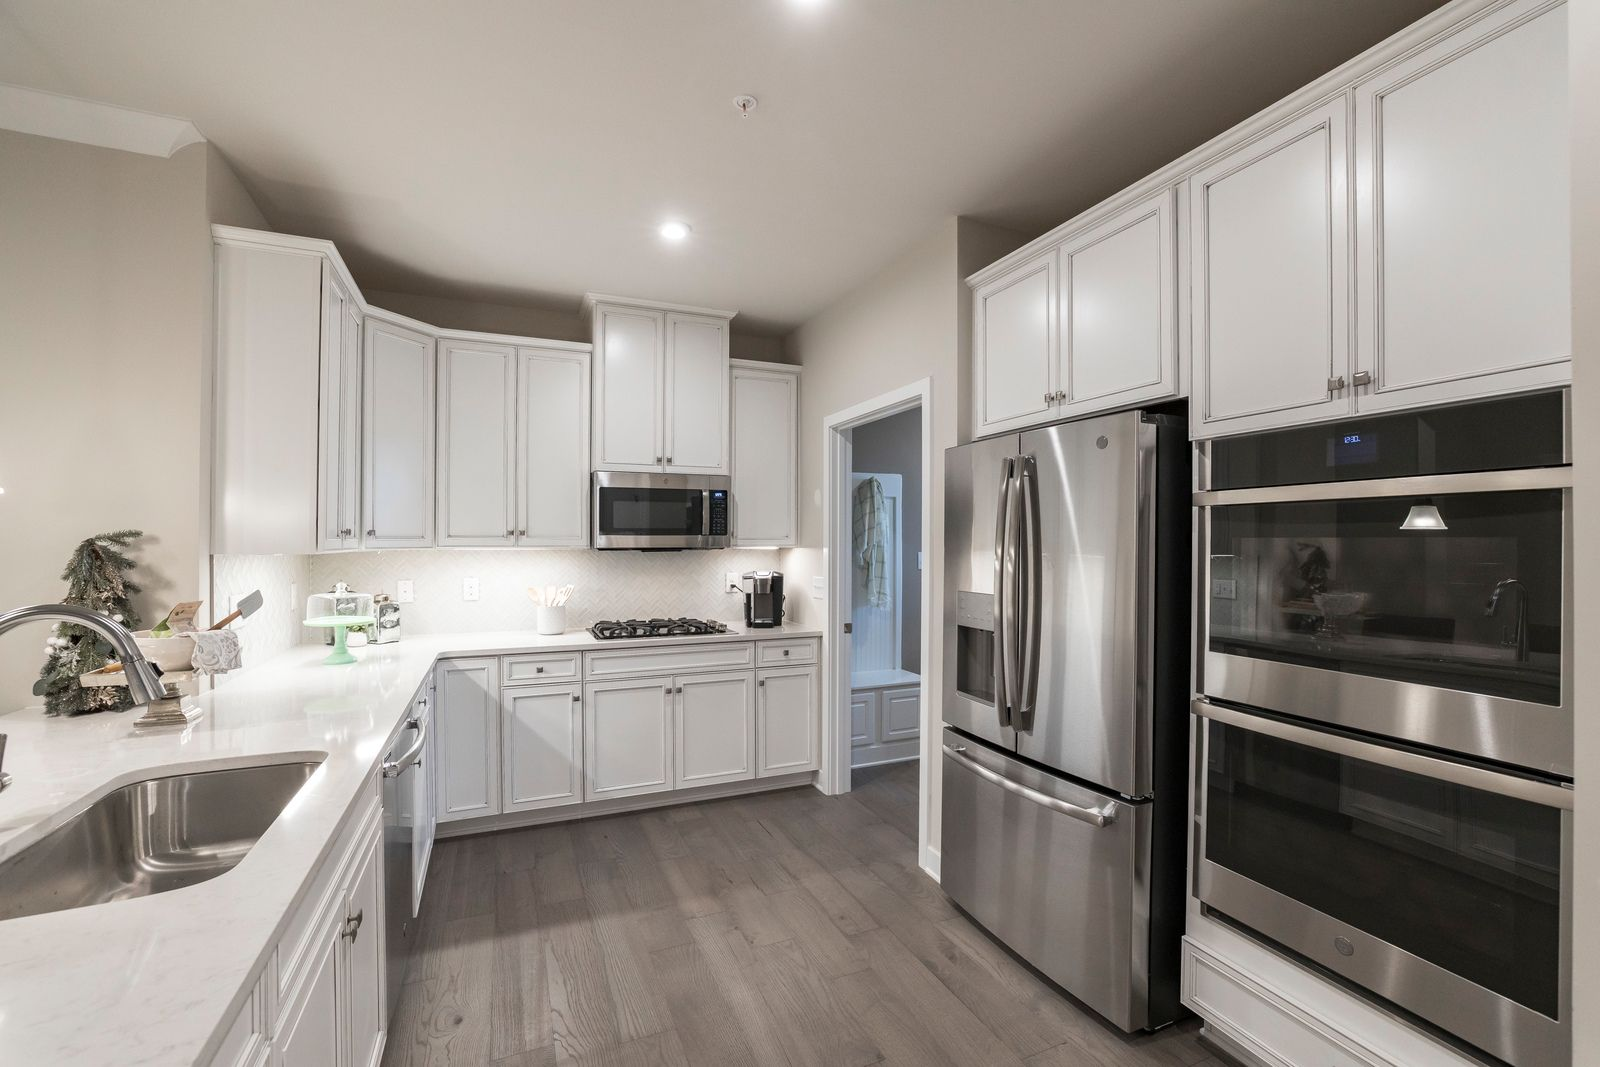 Kitchen featured in the Griffin Hall Grand By Ryan Homes in Philadelphia, PA